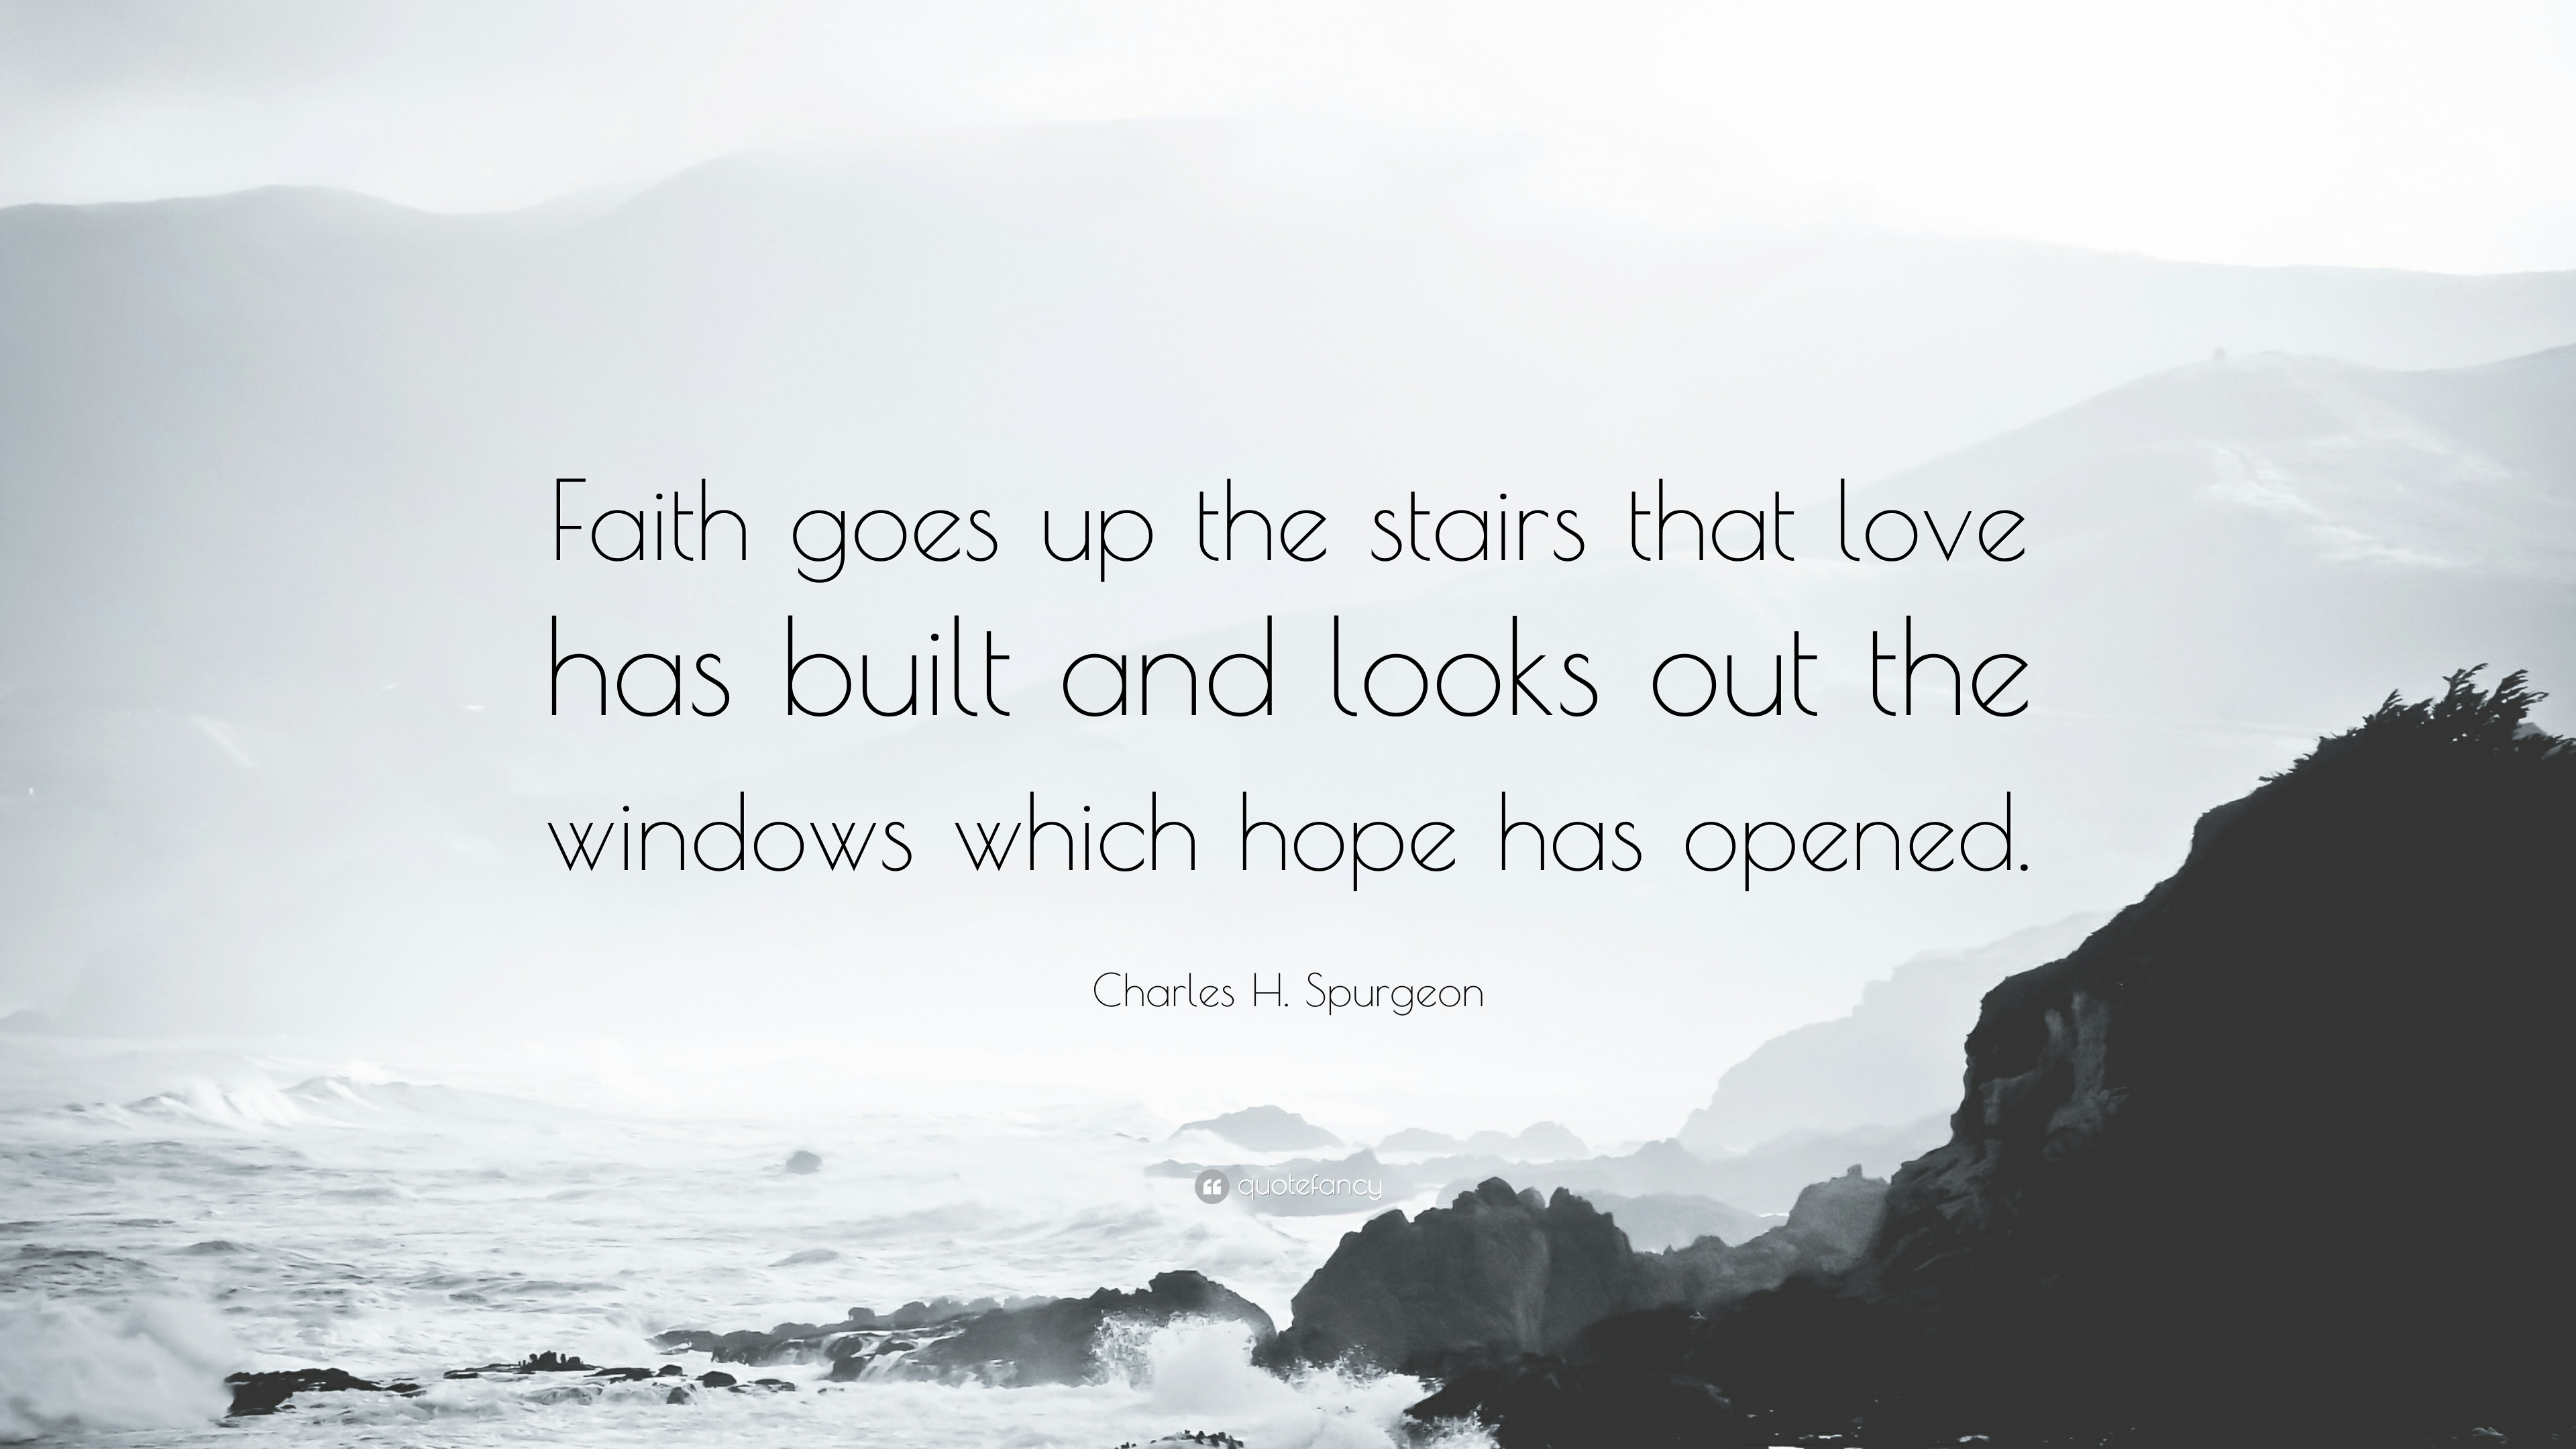 Charles H. Spurgeon Quote: U201cFaith Goes Up The Stairs That Love Has Built